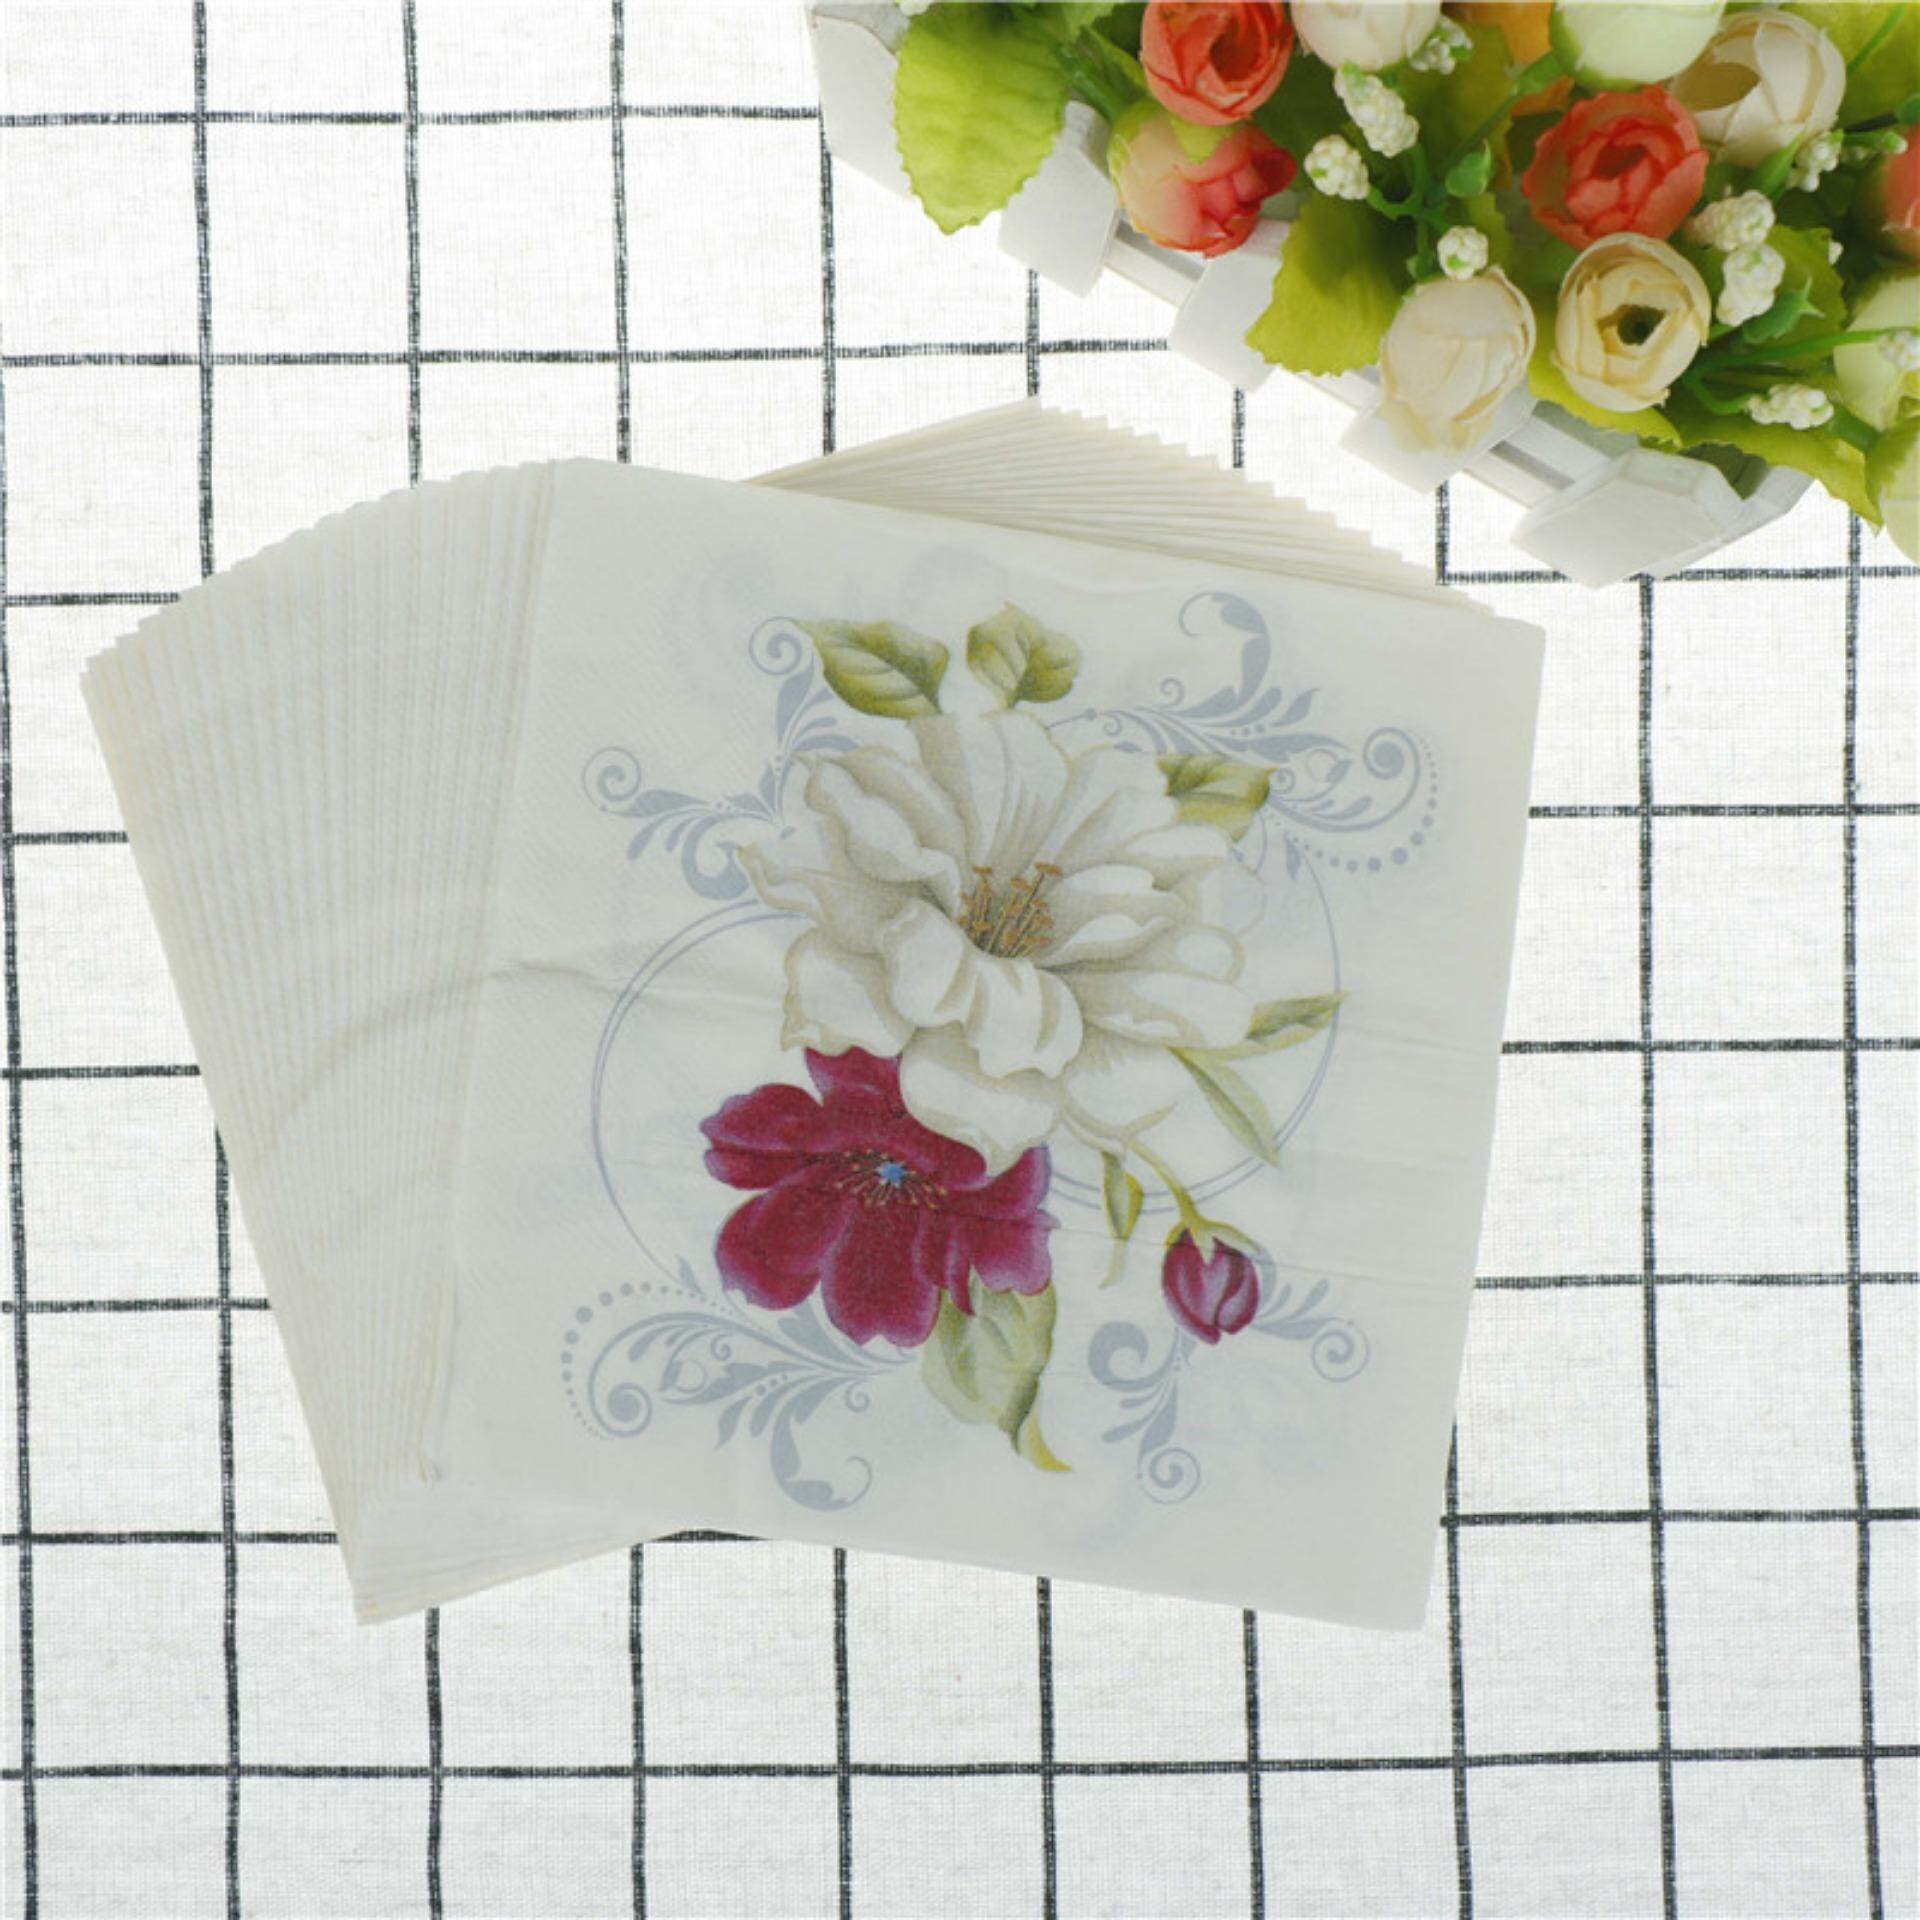 Home Cloth Napkins - Buy Home Cloth Napkins at Best Price in ...